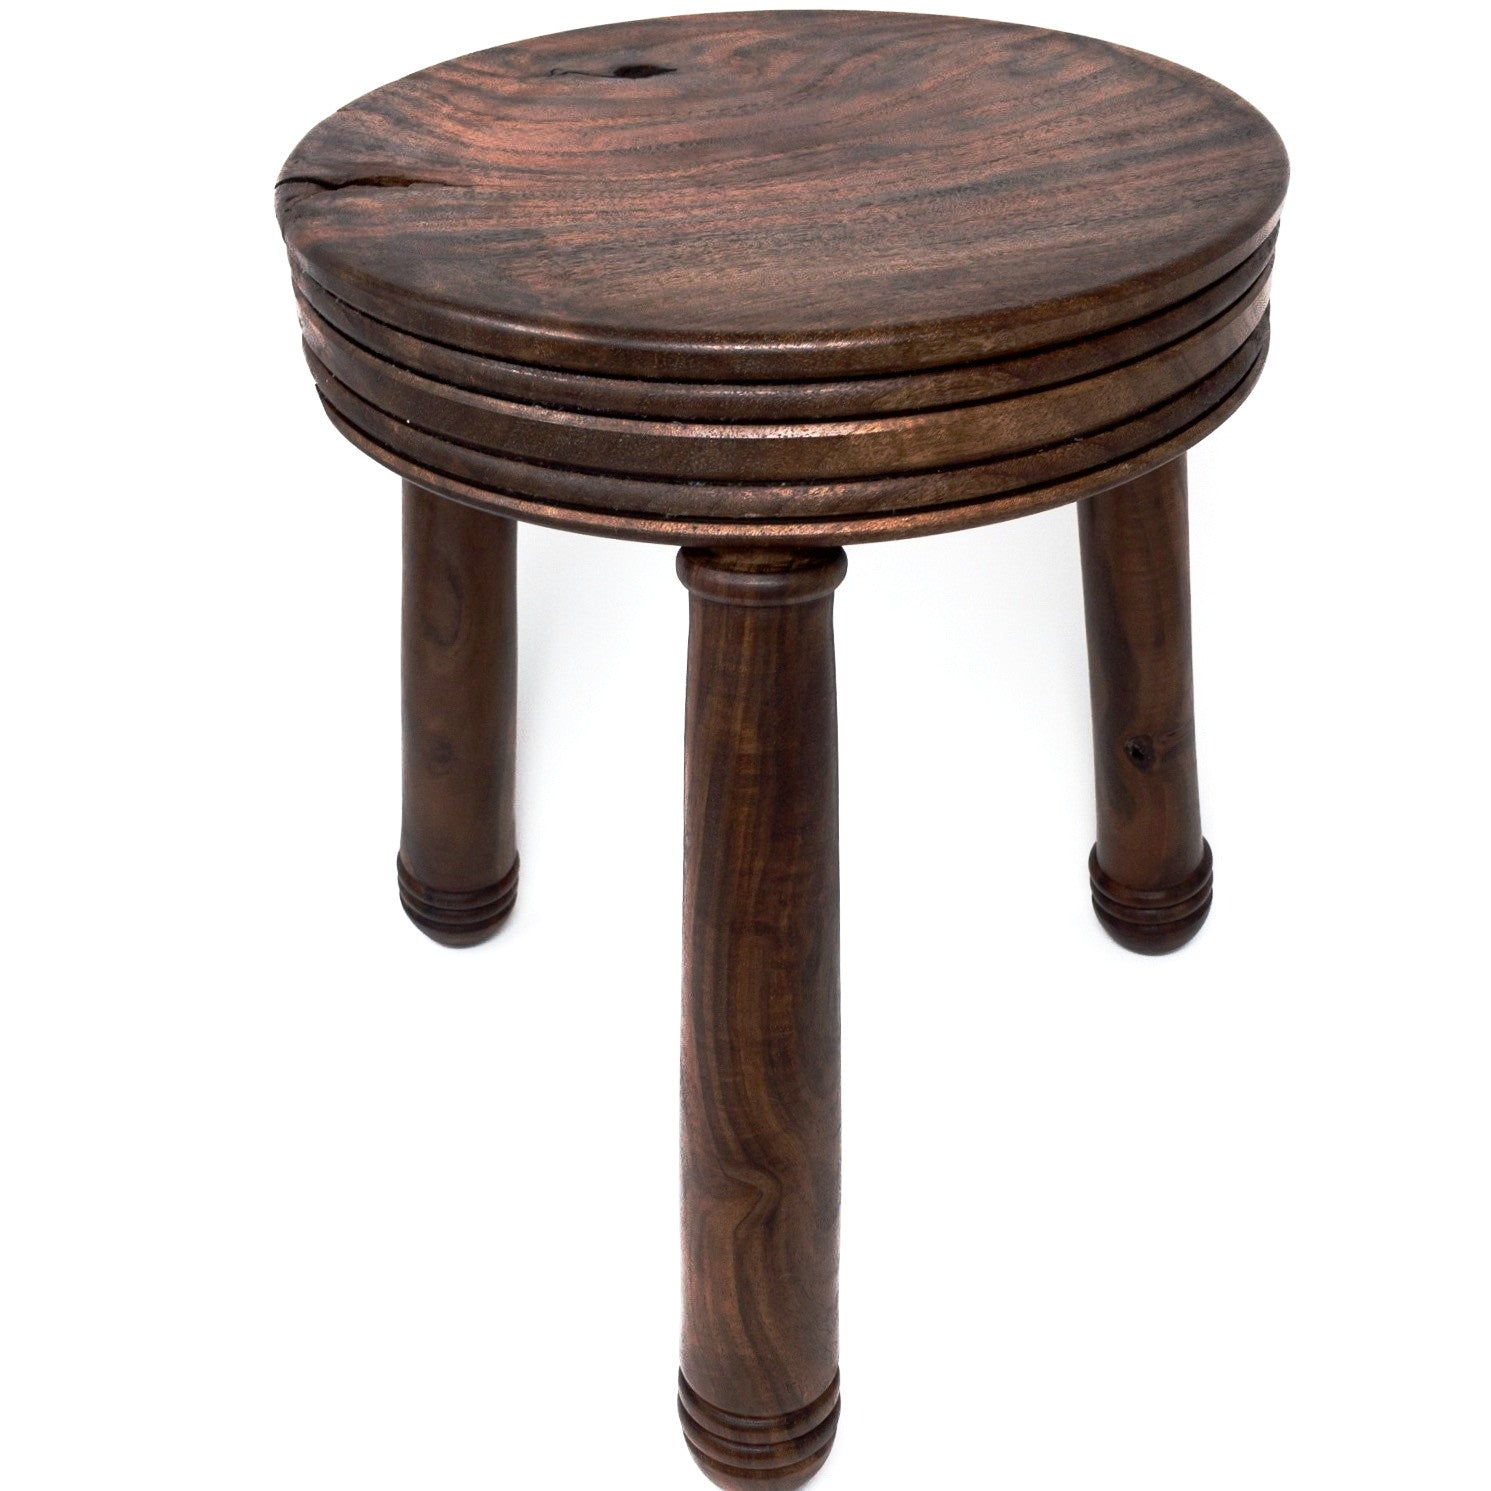 Round Black Walnut wood turned stool. Elegant design. Great gift for dad.